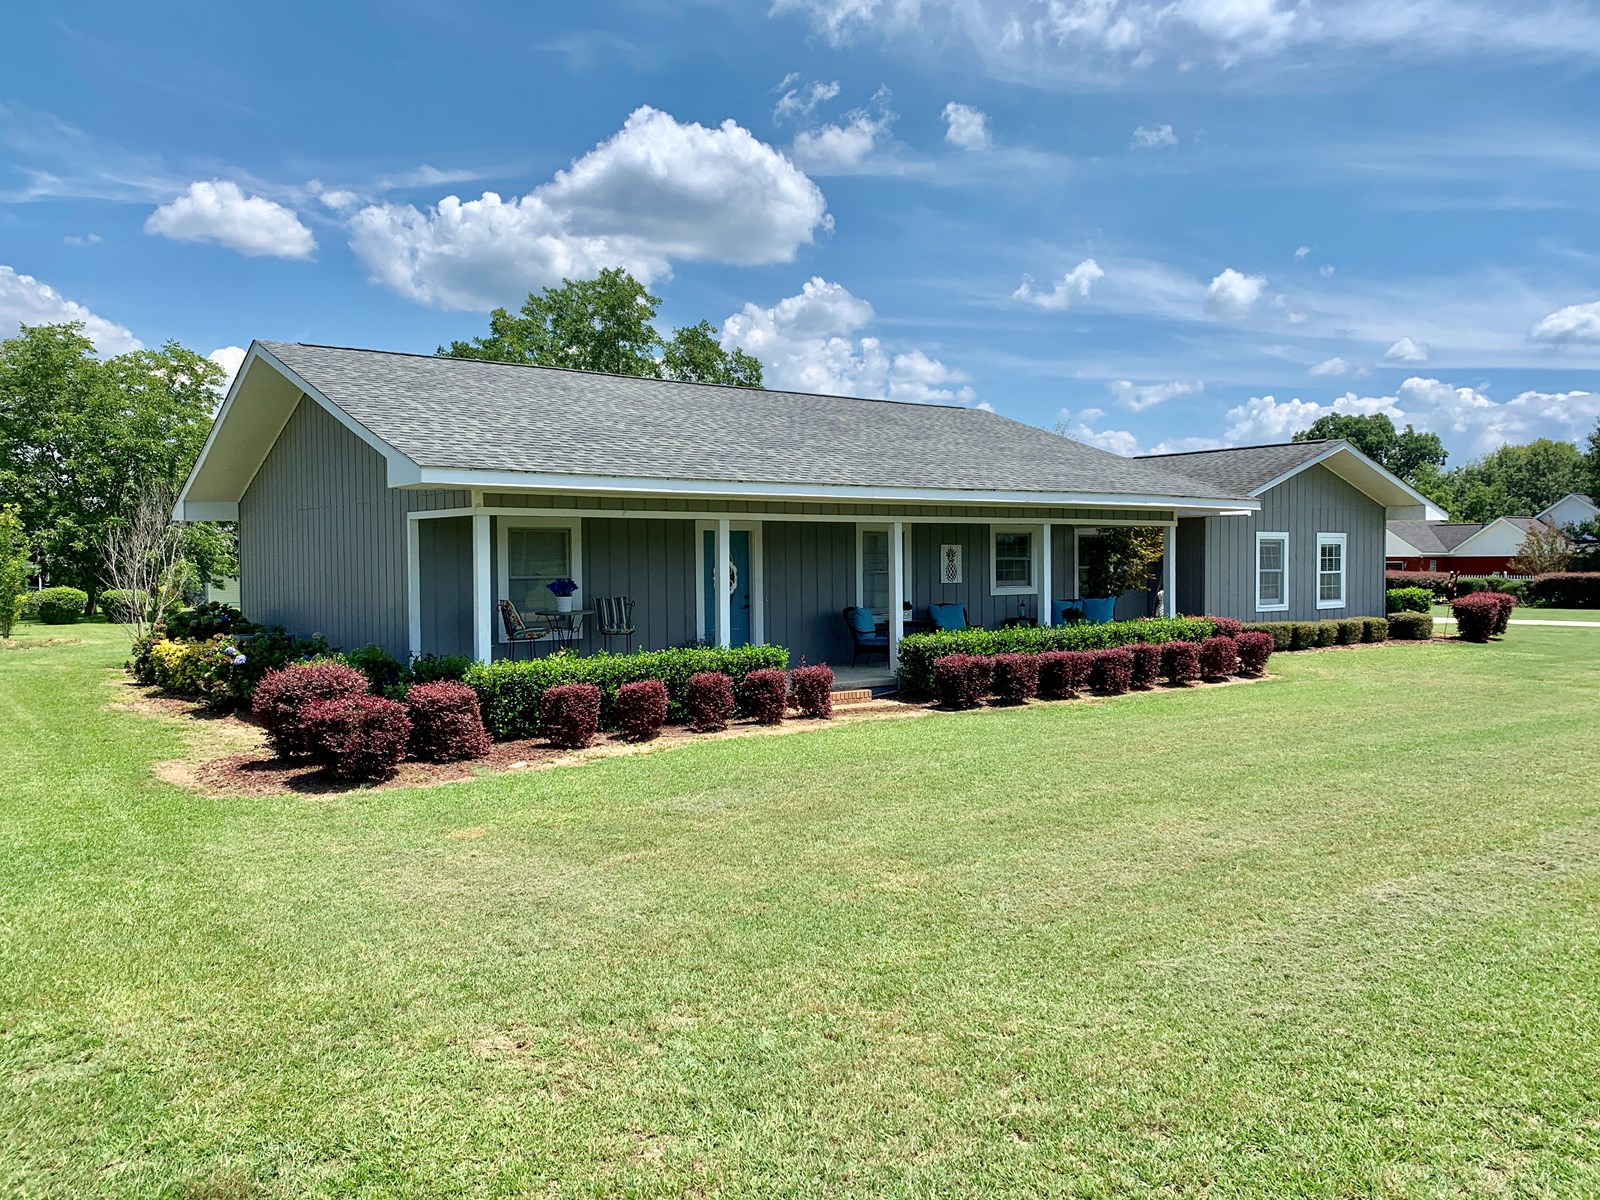 3B/2B HOME IN THE TOWN OF HARTFORD, ALABAMA